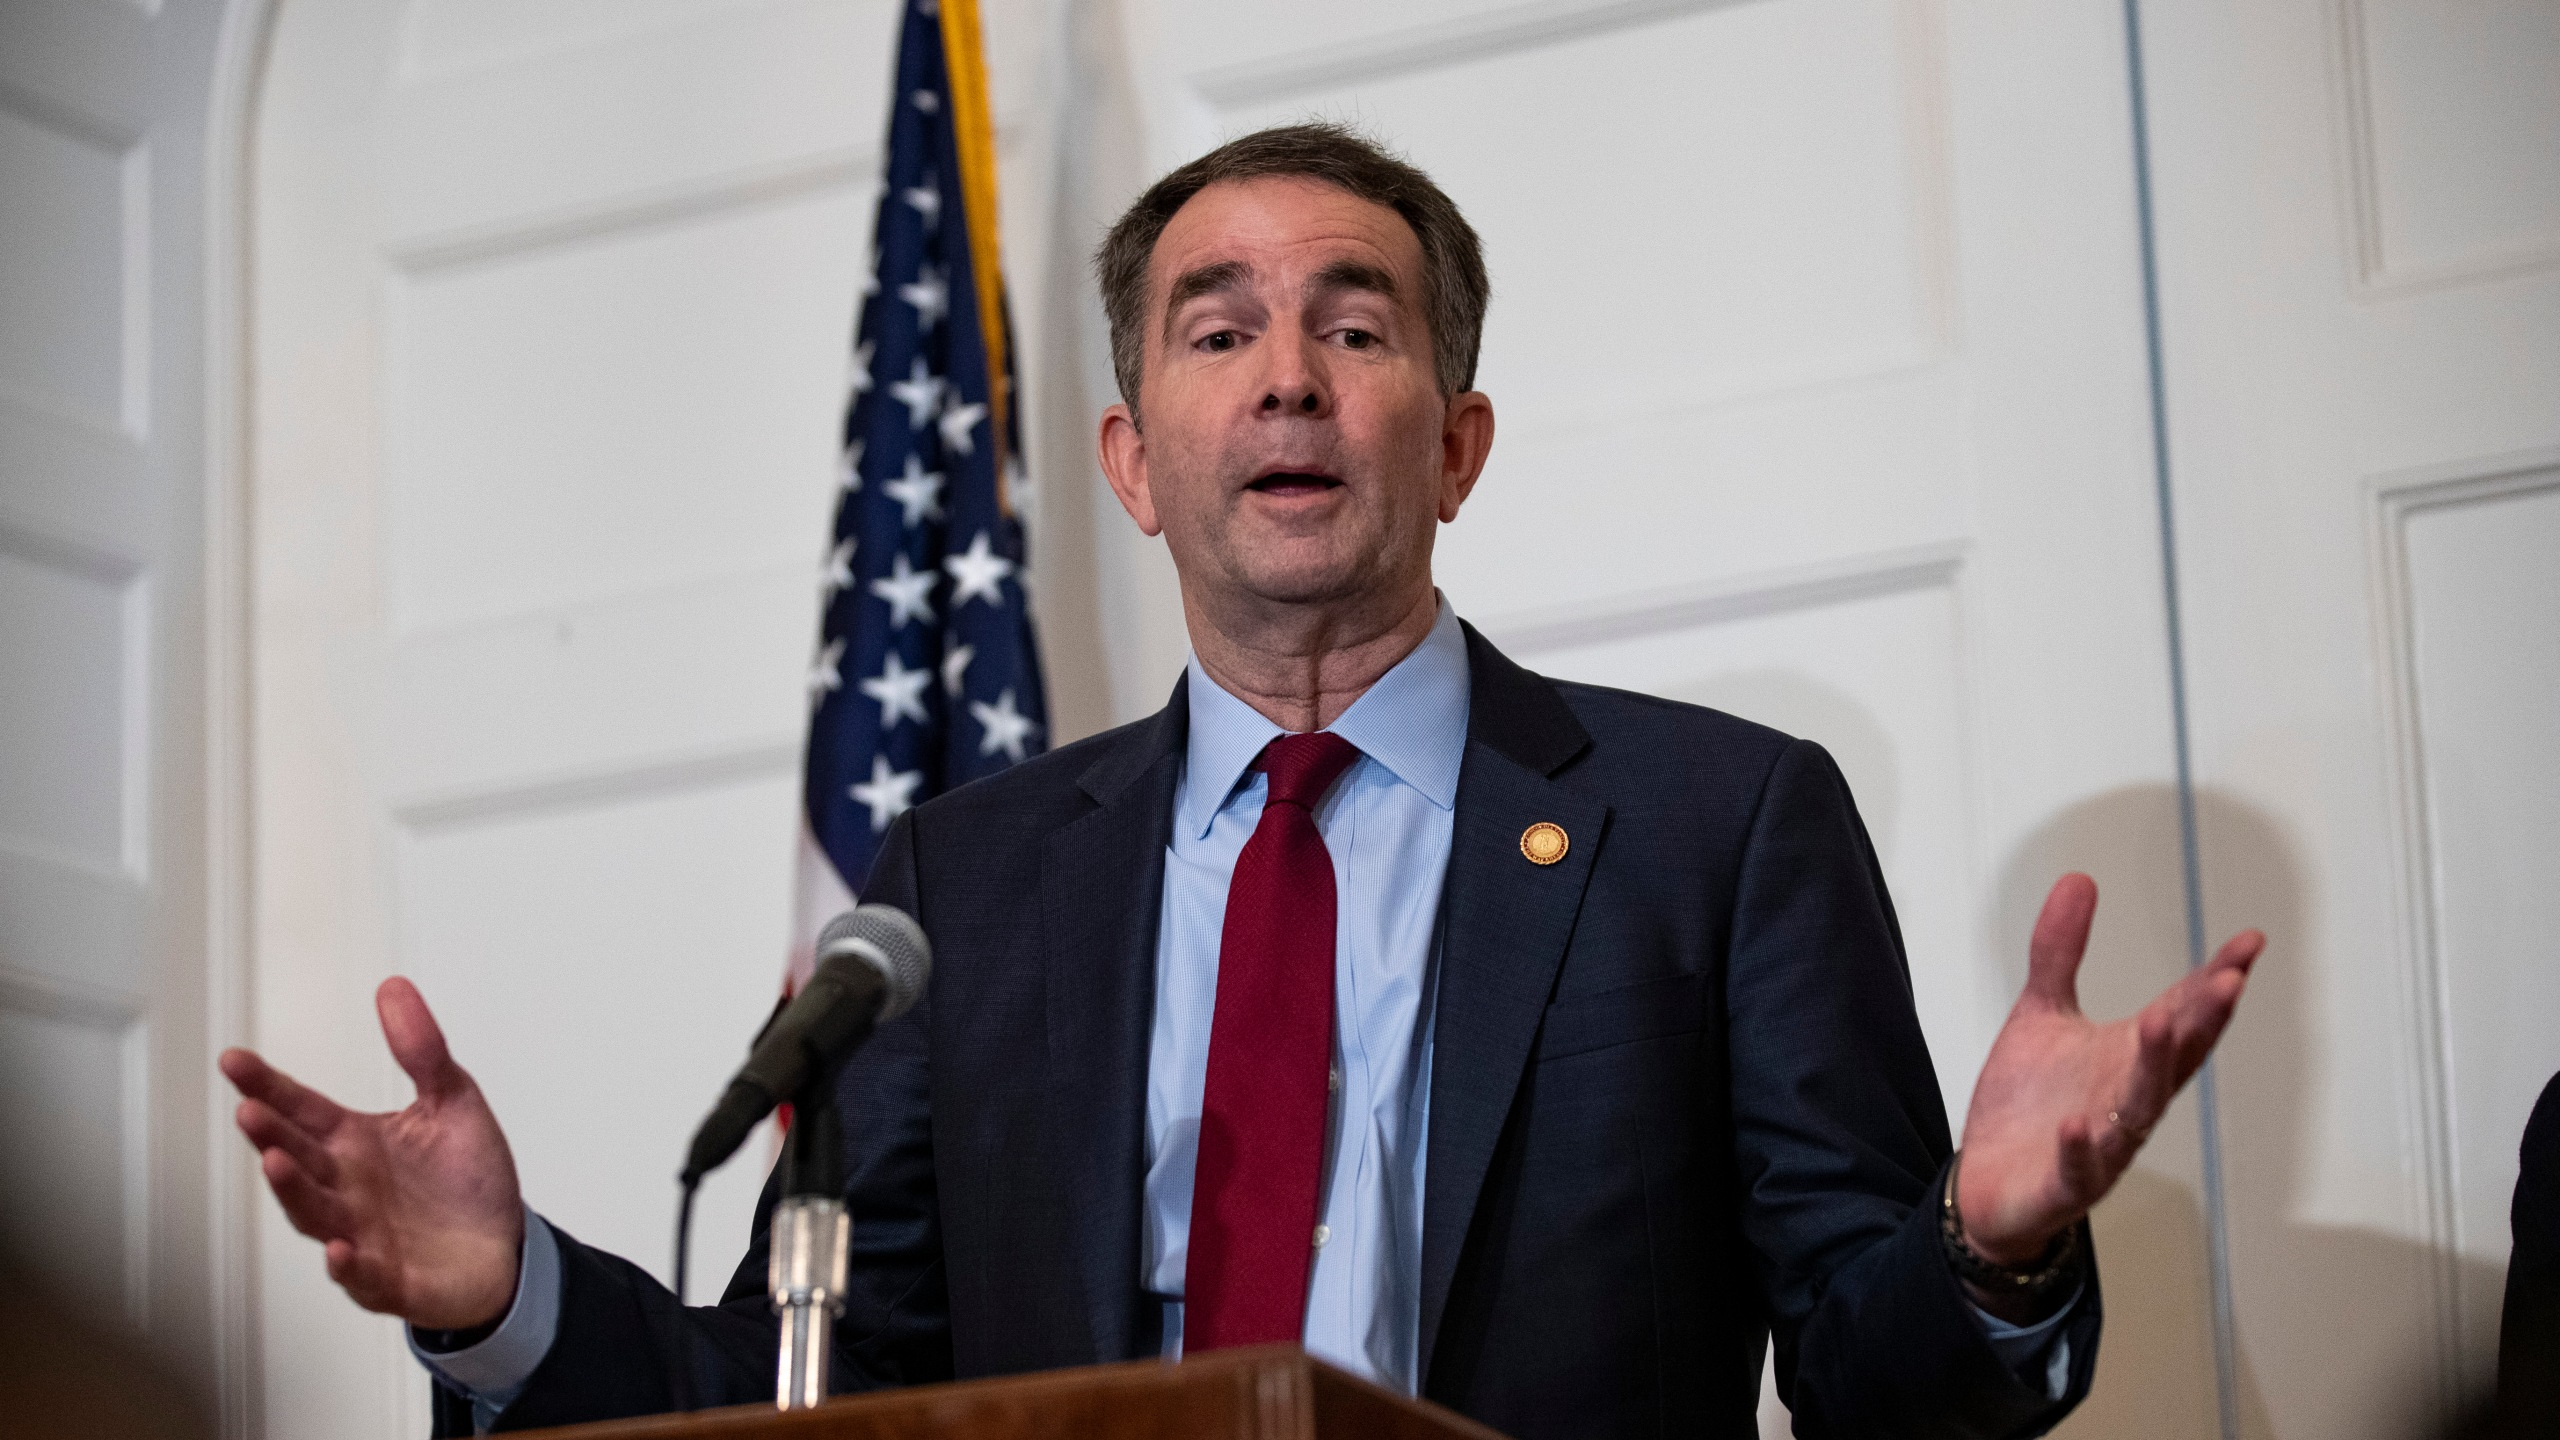 Virginia Governor Ralph Northam speaks with reporters at a press conference at the Governor's mansion on February 2, 2019 in Richmond, Virginia. (Credit: Alex Edelman/Getty Images)